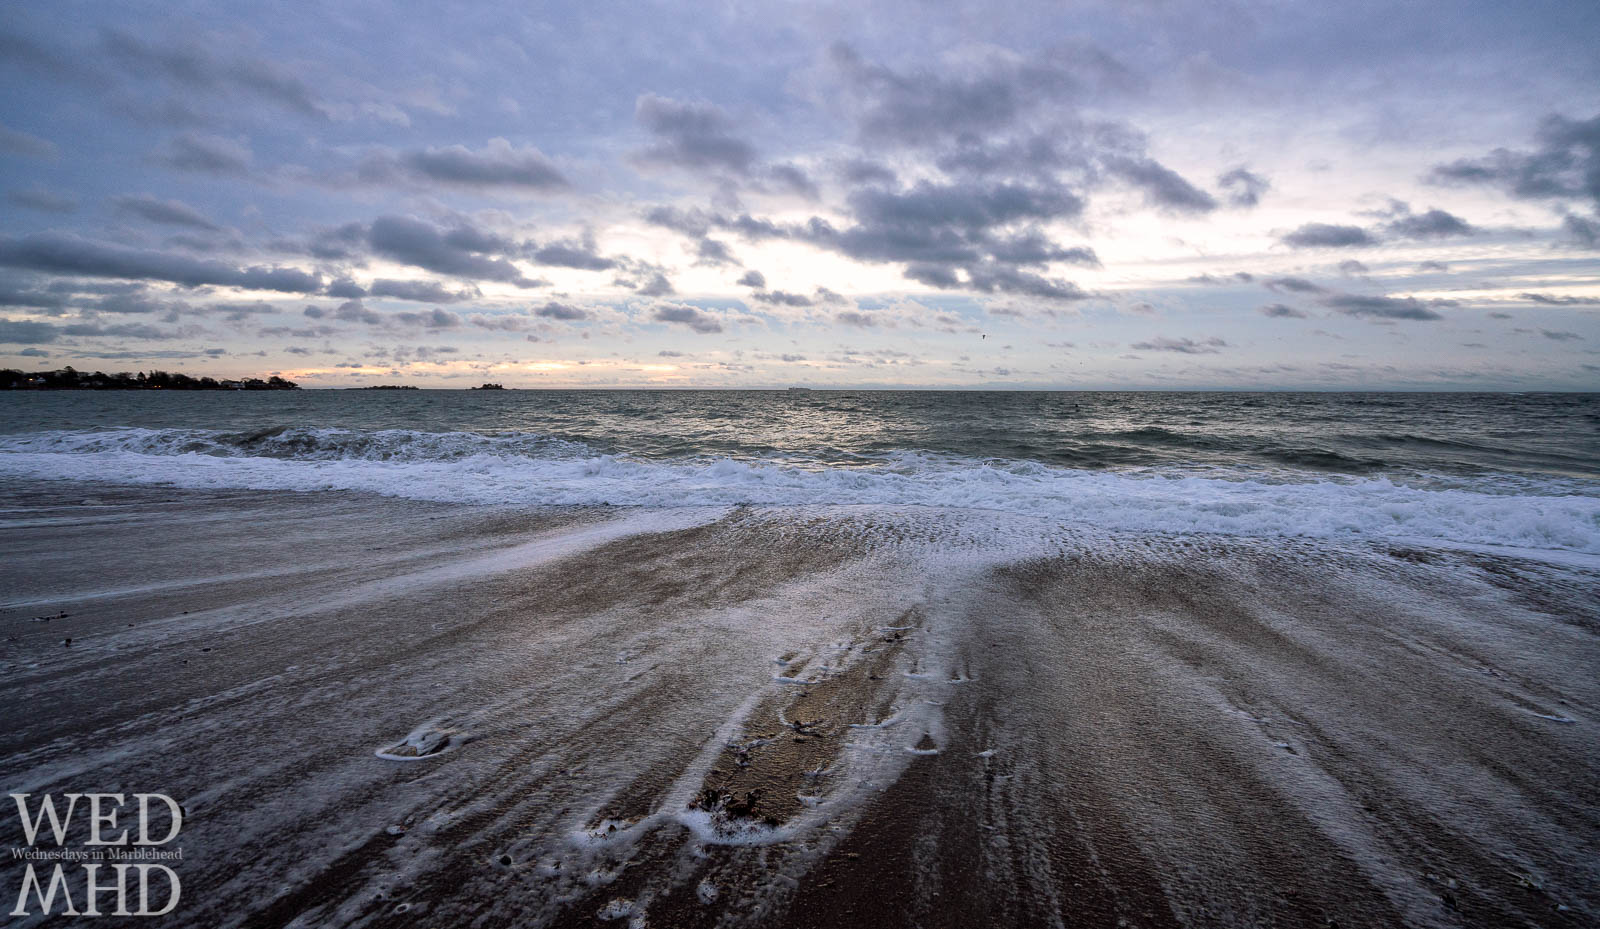 Waves recede at Devereux Beach illustrating the pull of the ocean as a new day dawns in Marblehead